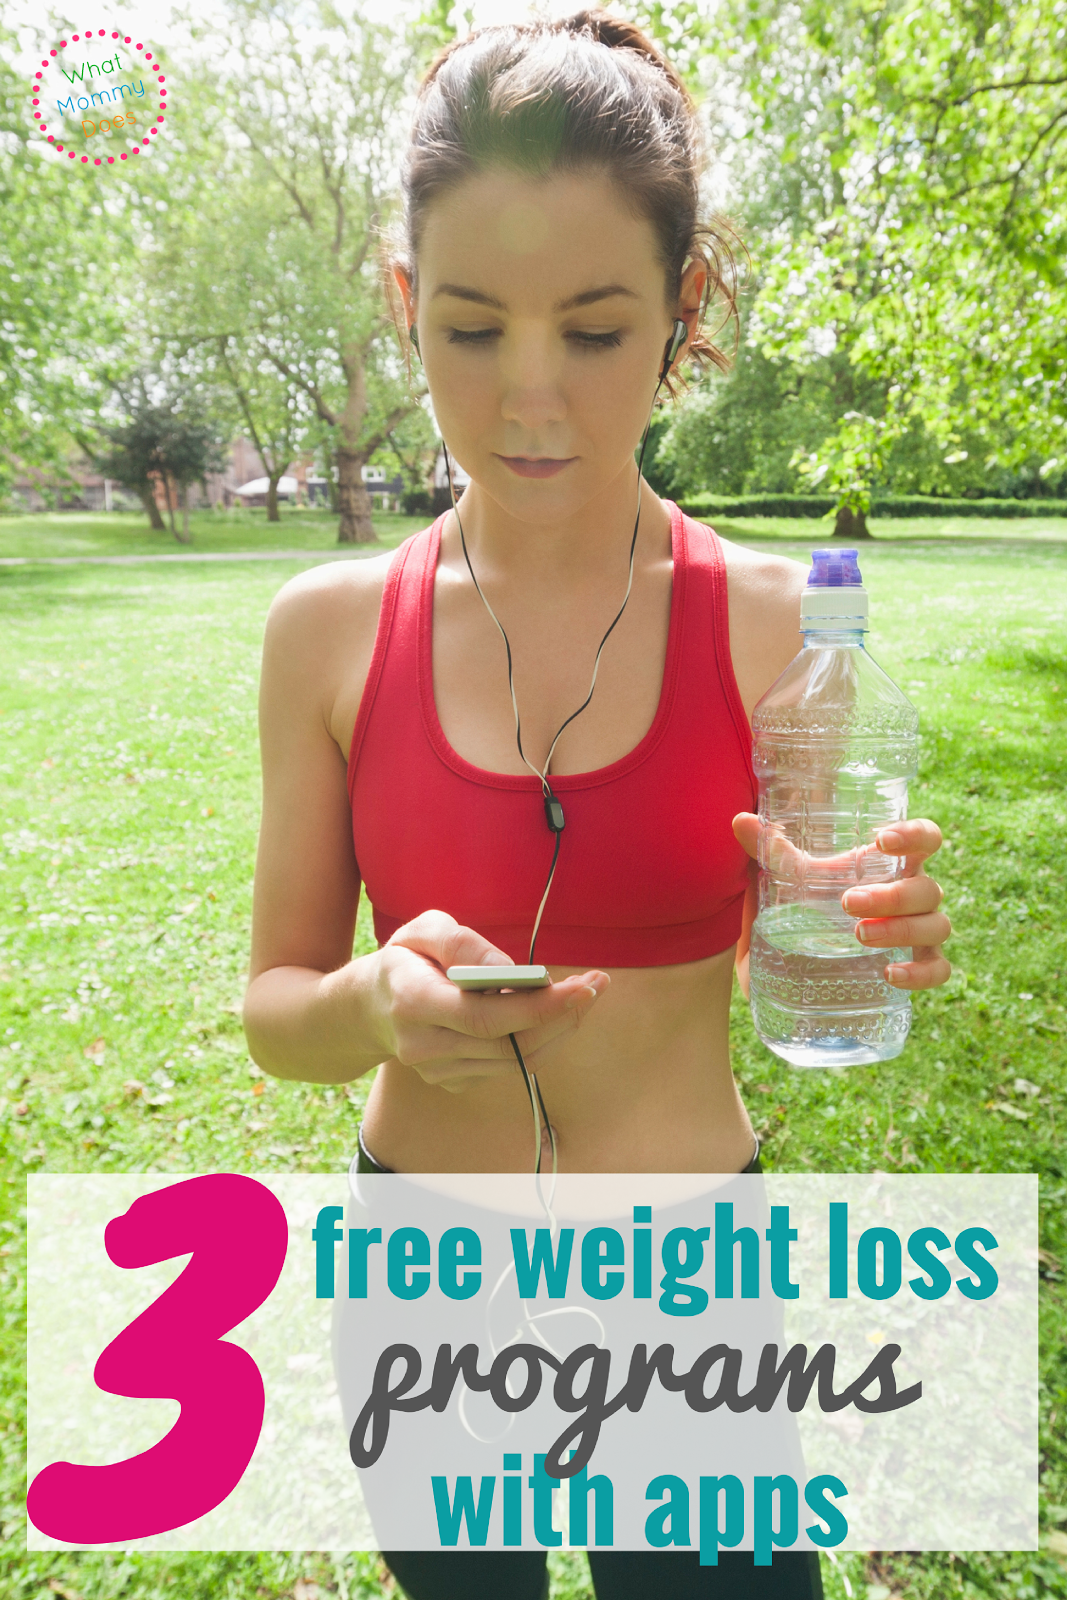 Check out these 3 free weight loss programs that have easy mobile apps for weight loss tracking. There are diet plans and food logs too!